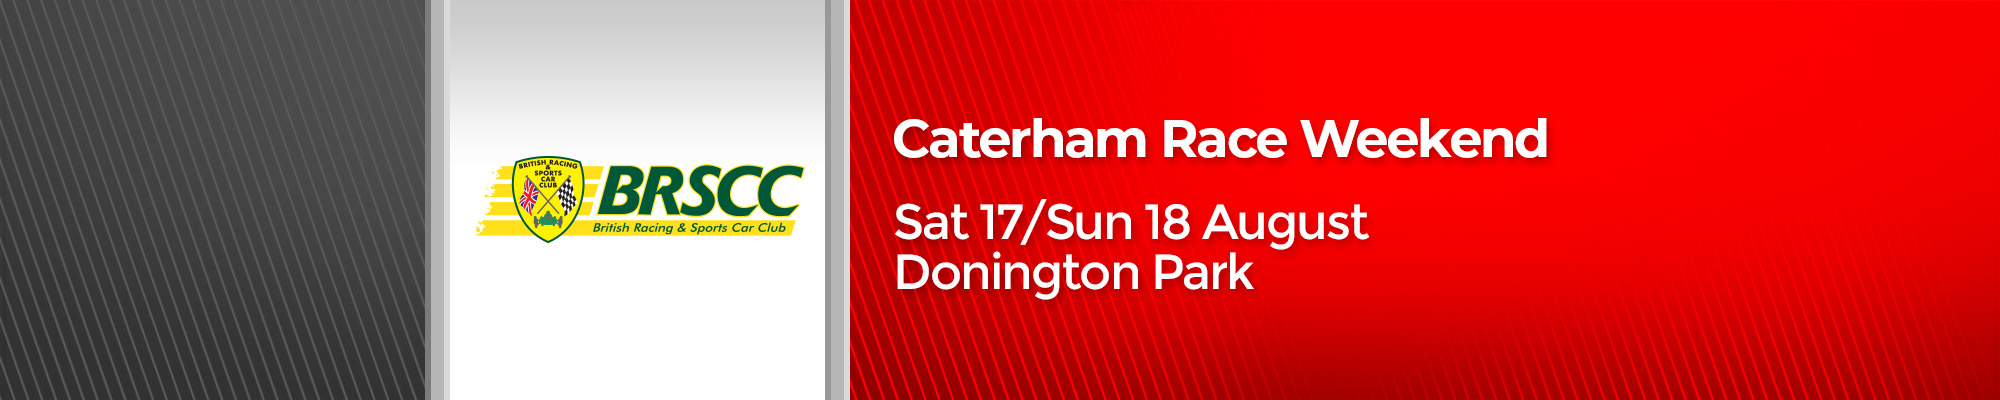 Caterham Race Weekend